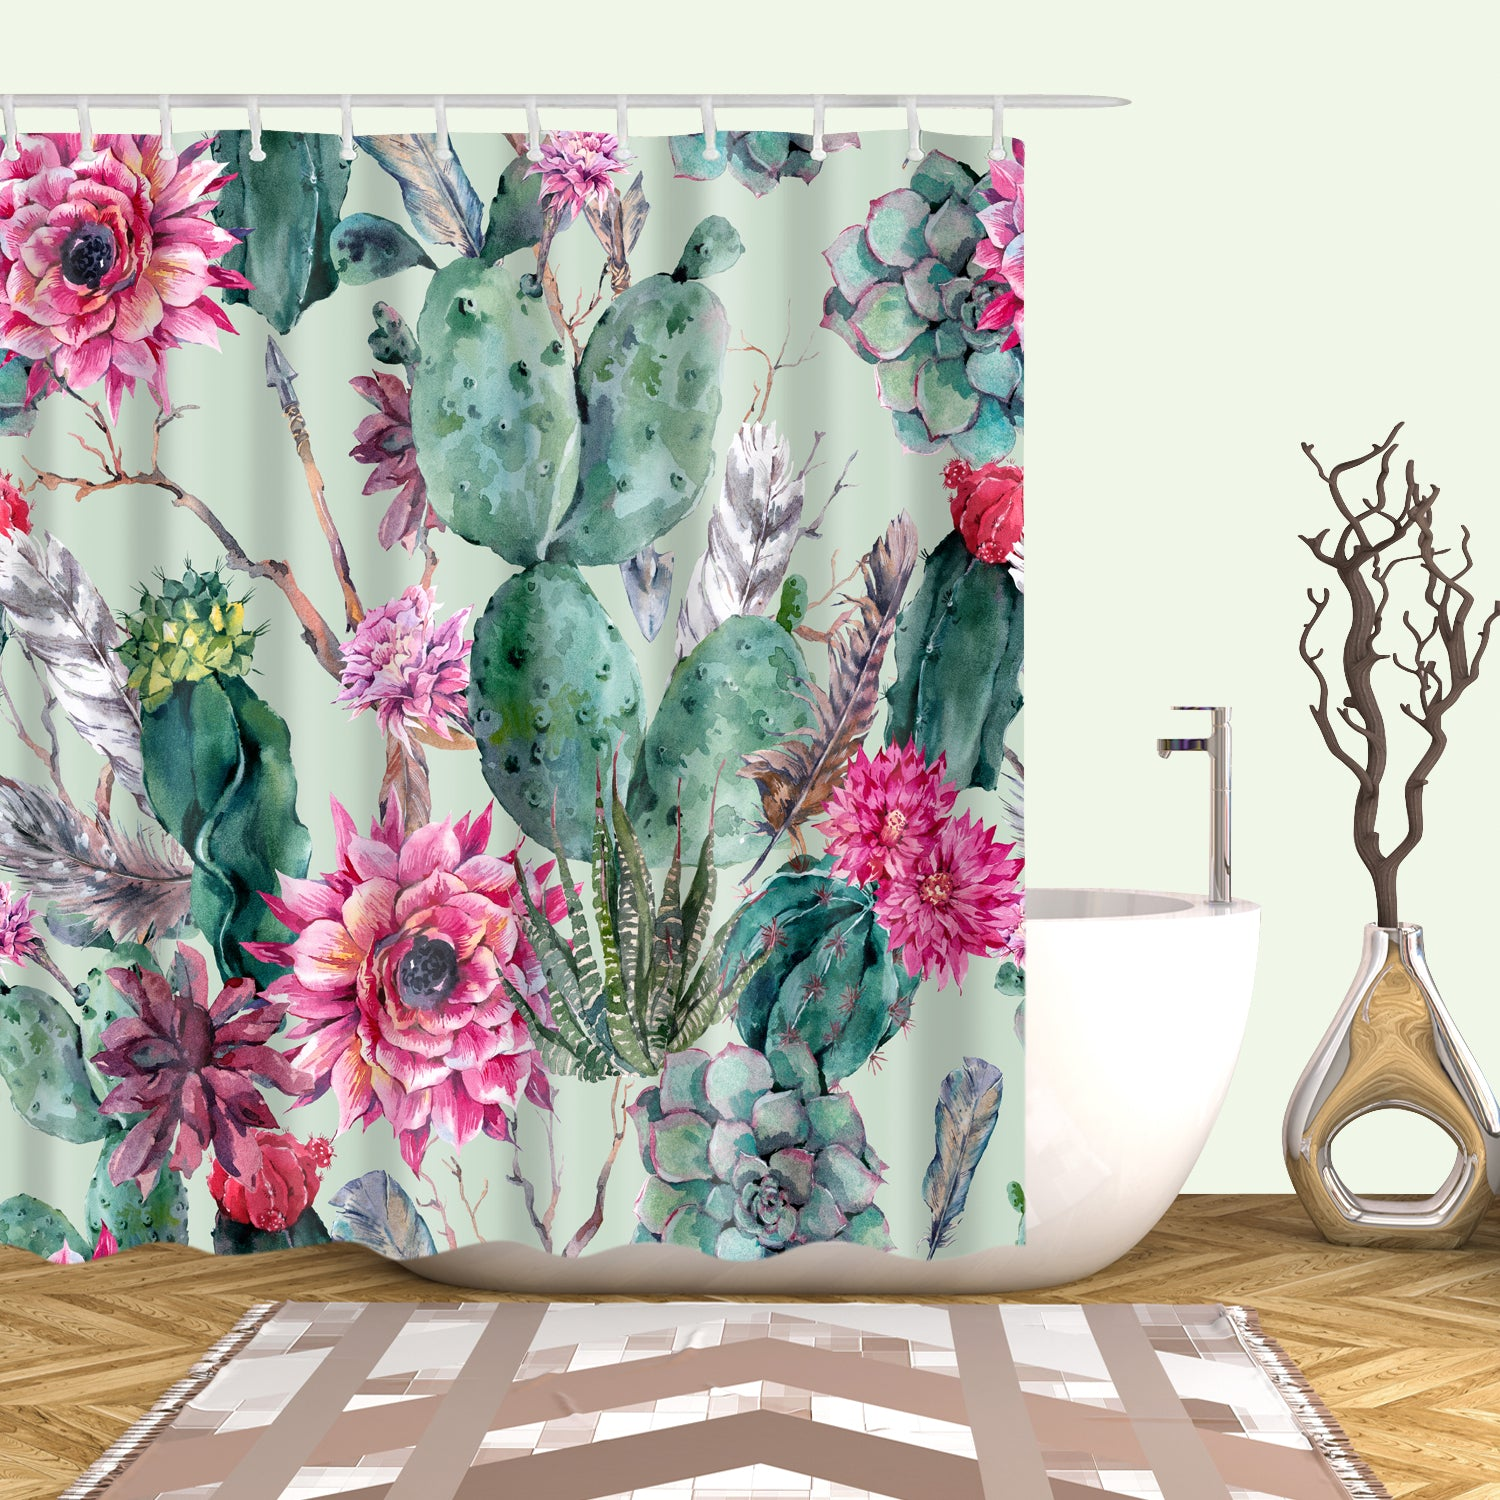 Vivid WaterColor Cactus with Floral Shower Curtain